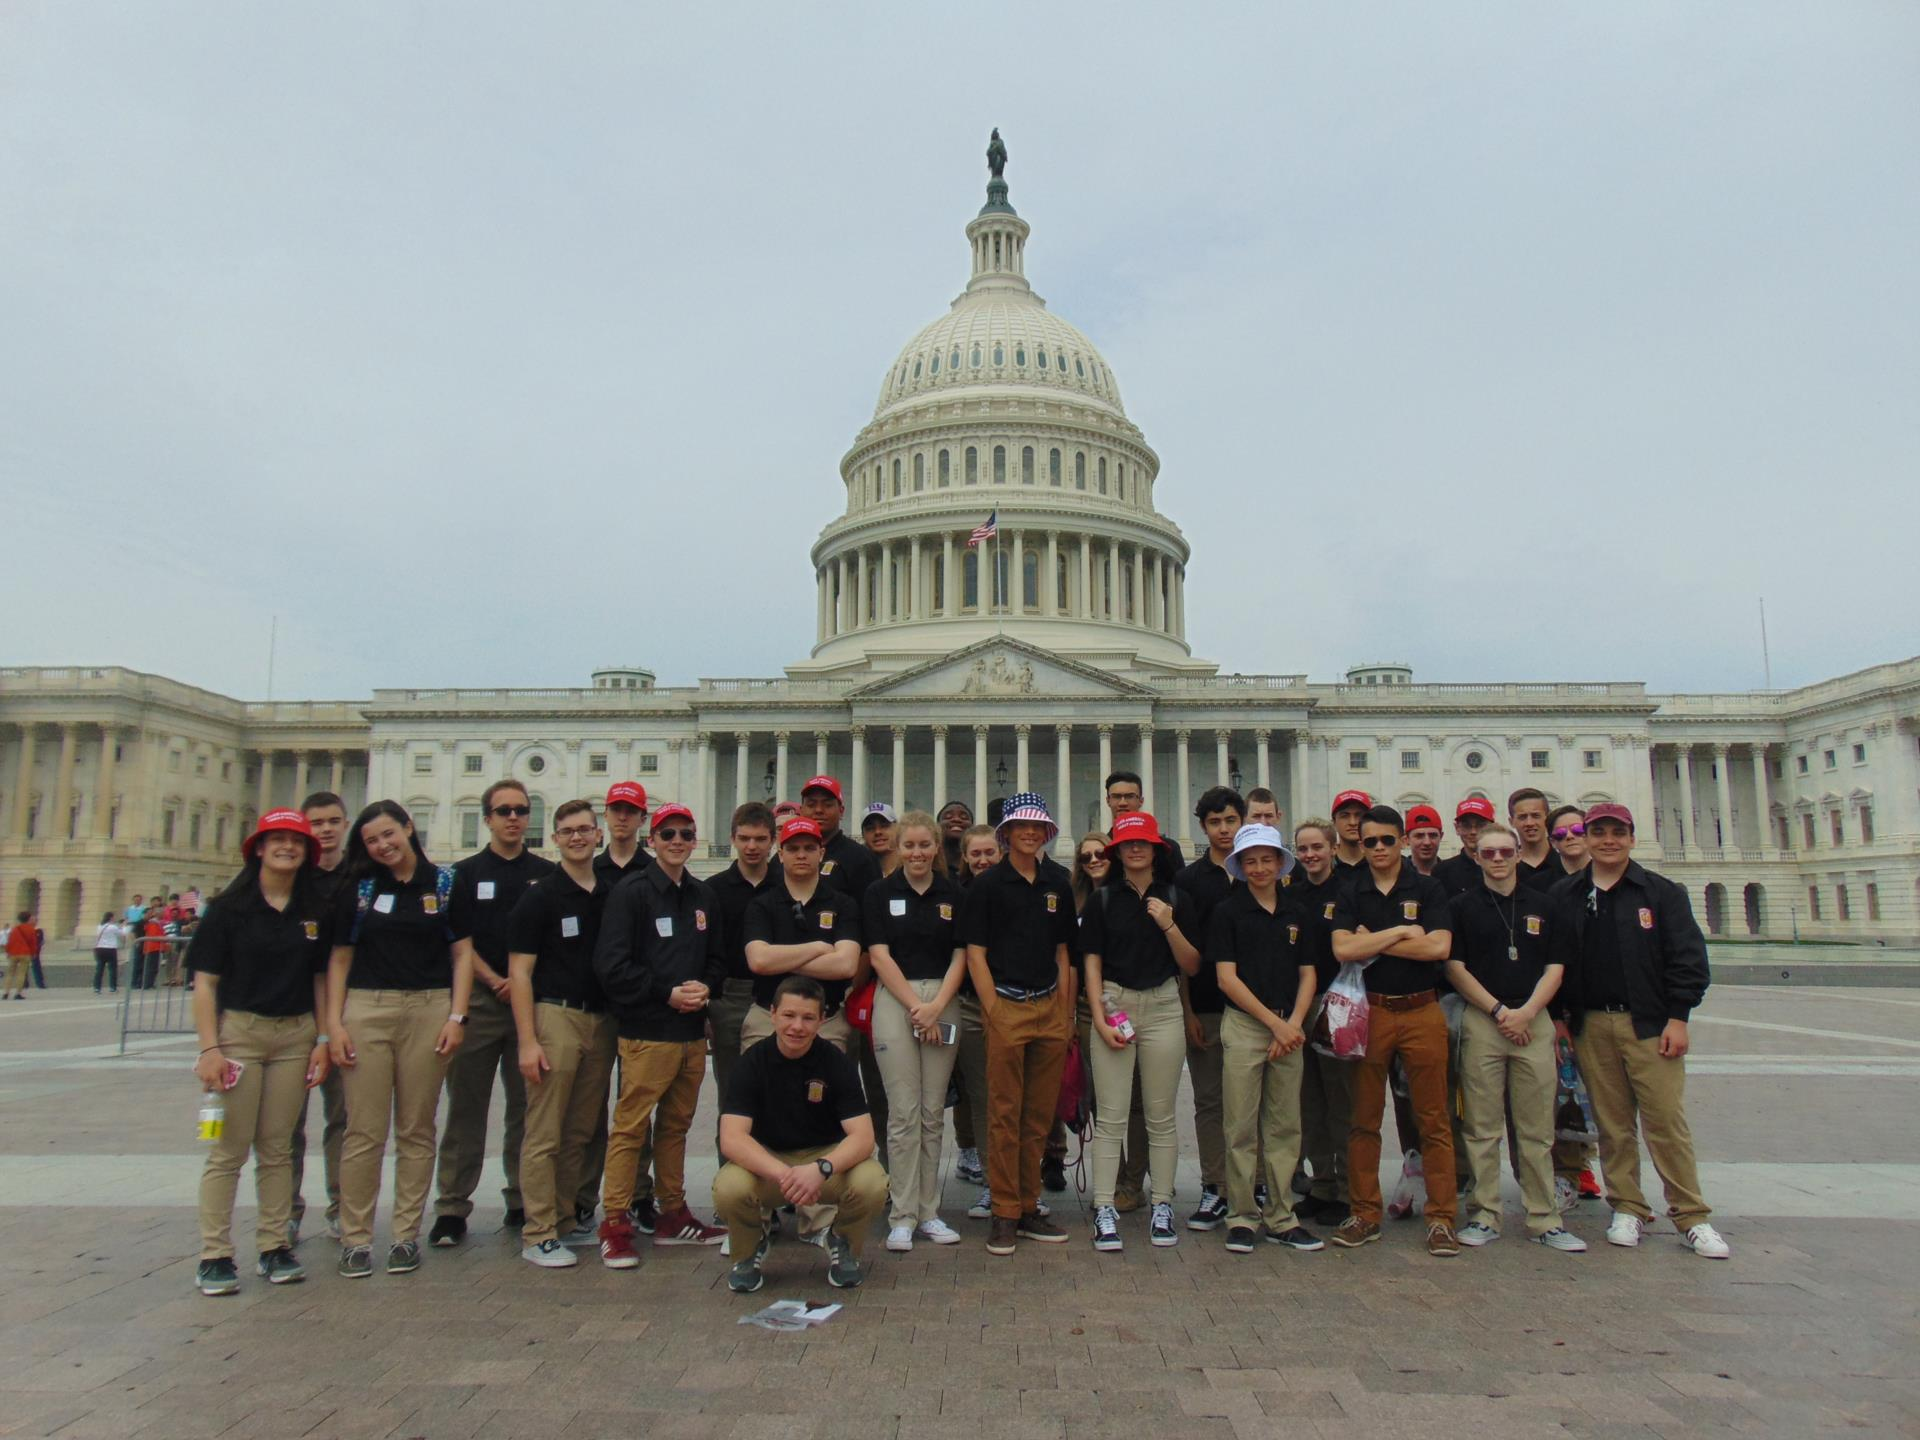 Picture of JROTC cadets with the capital building in background